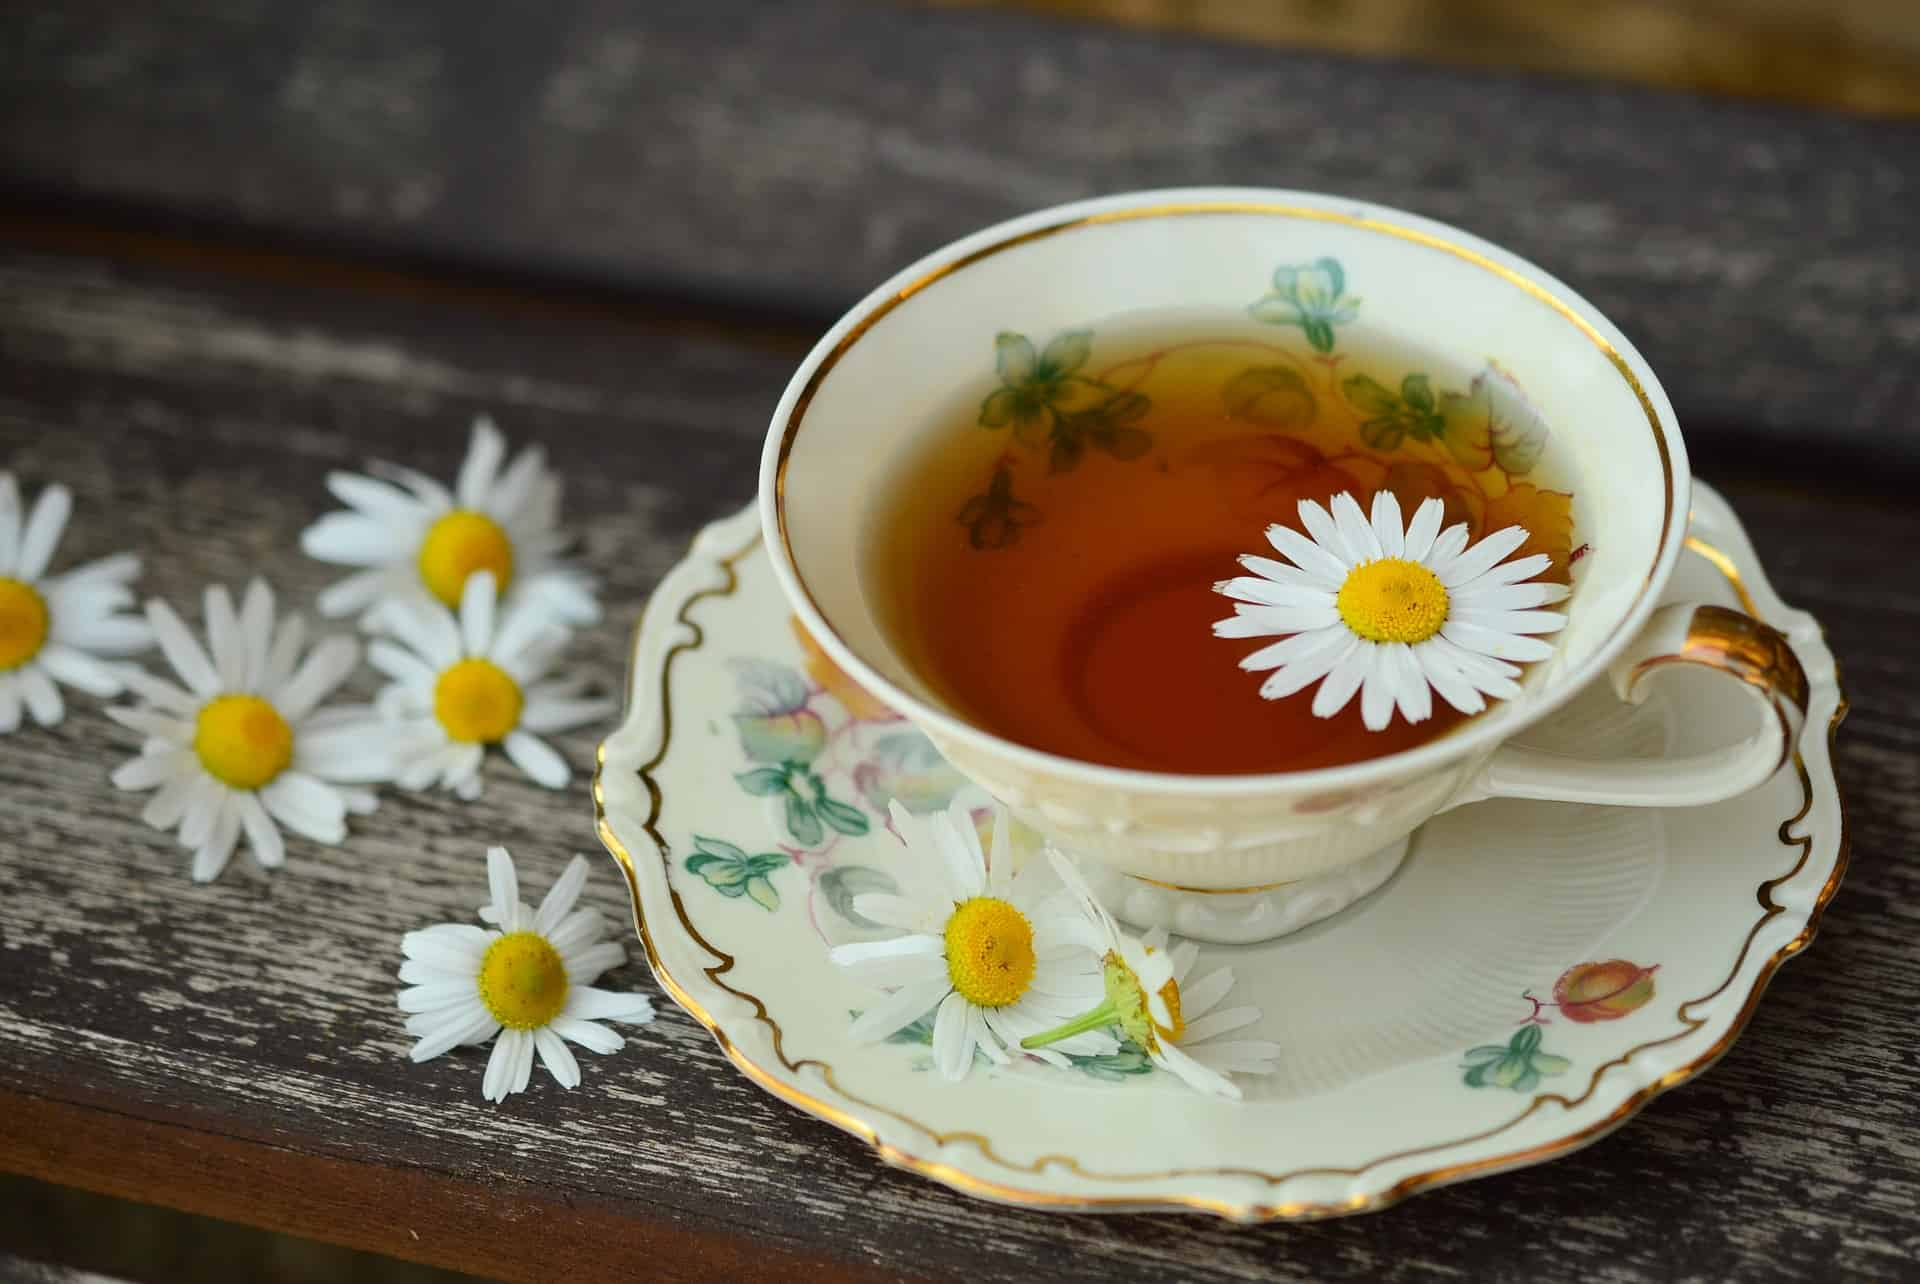 Healthy Home Made Tea Recipes To Try